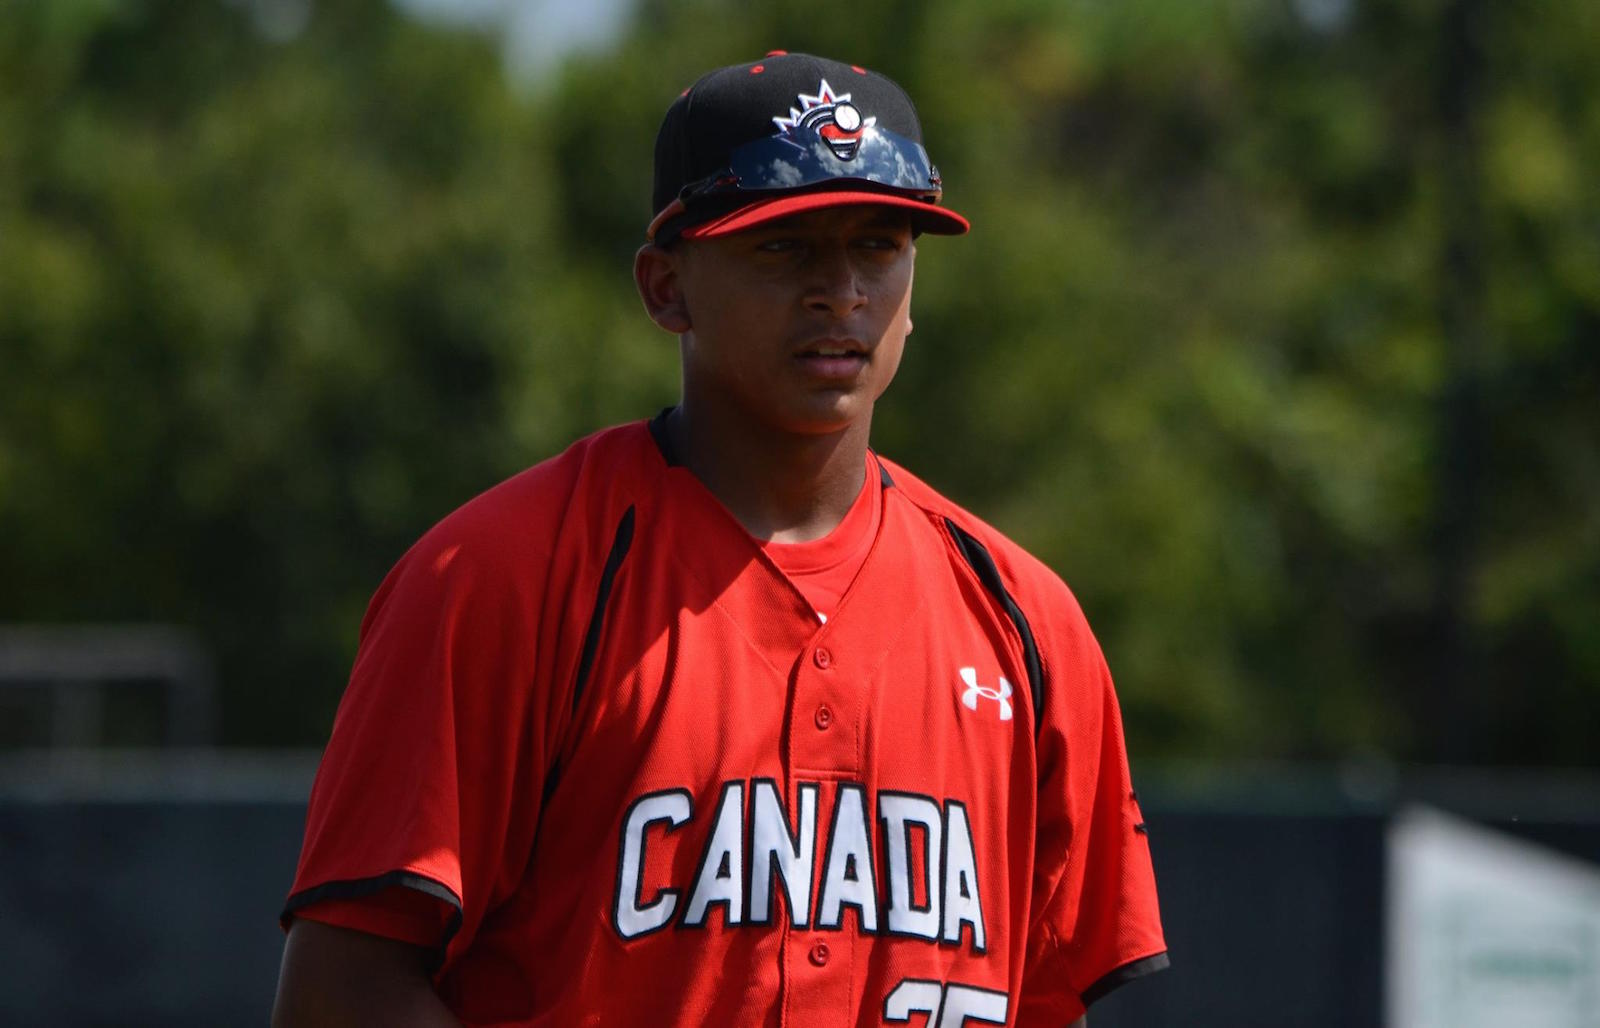 DH Noah Naylor singled and knocked in a run as the Canadian Junior National Team lost 14-2 to the Houston Astros first and second-year pro.